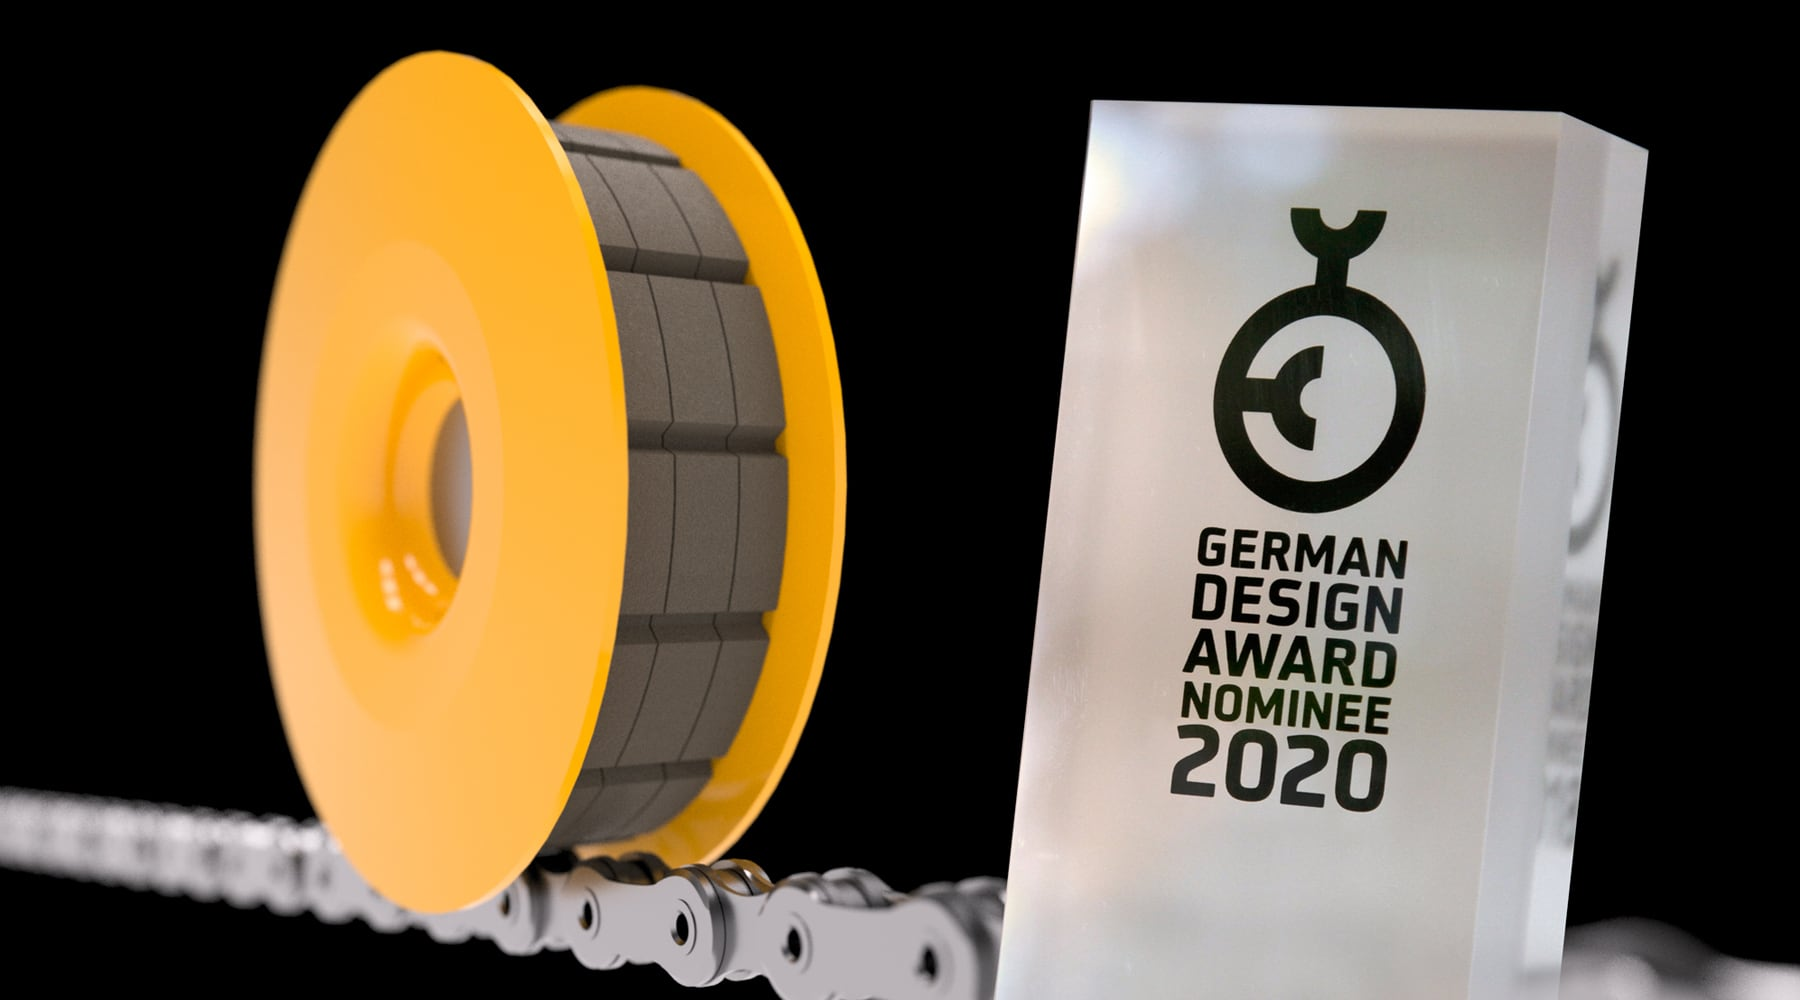 FLECTR LUBRI DISC - German Design Award 2020 nominee for Excellent Product Design